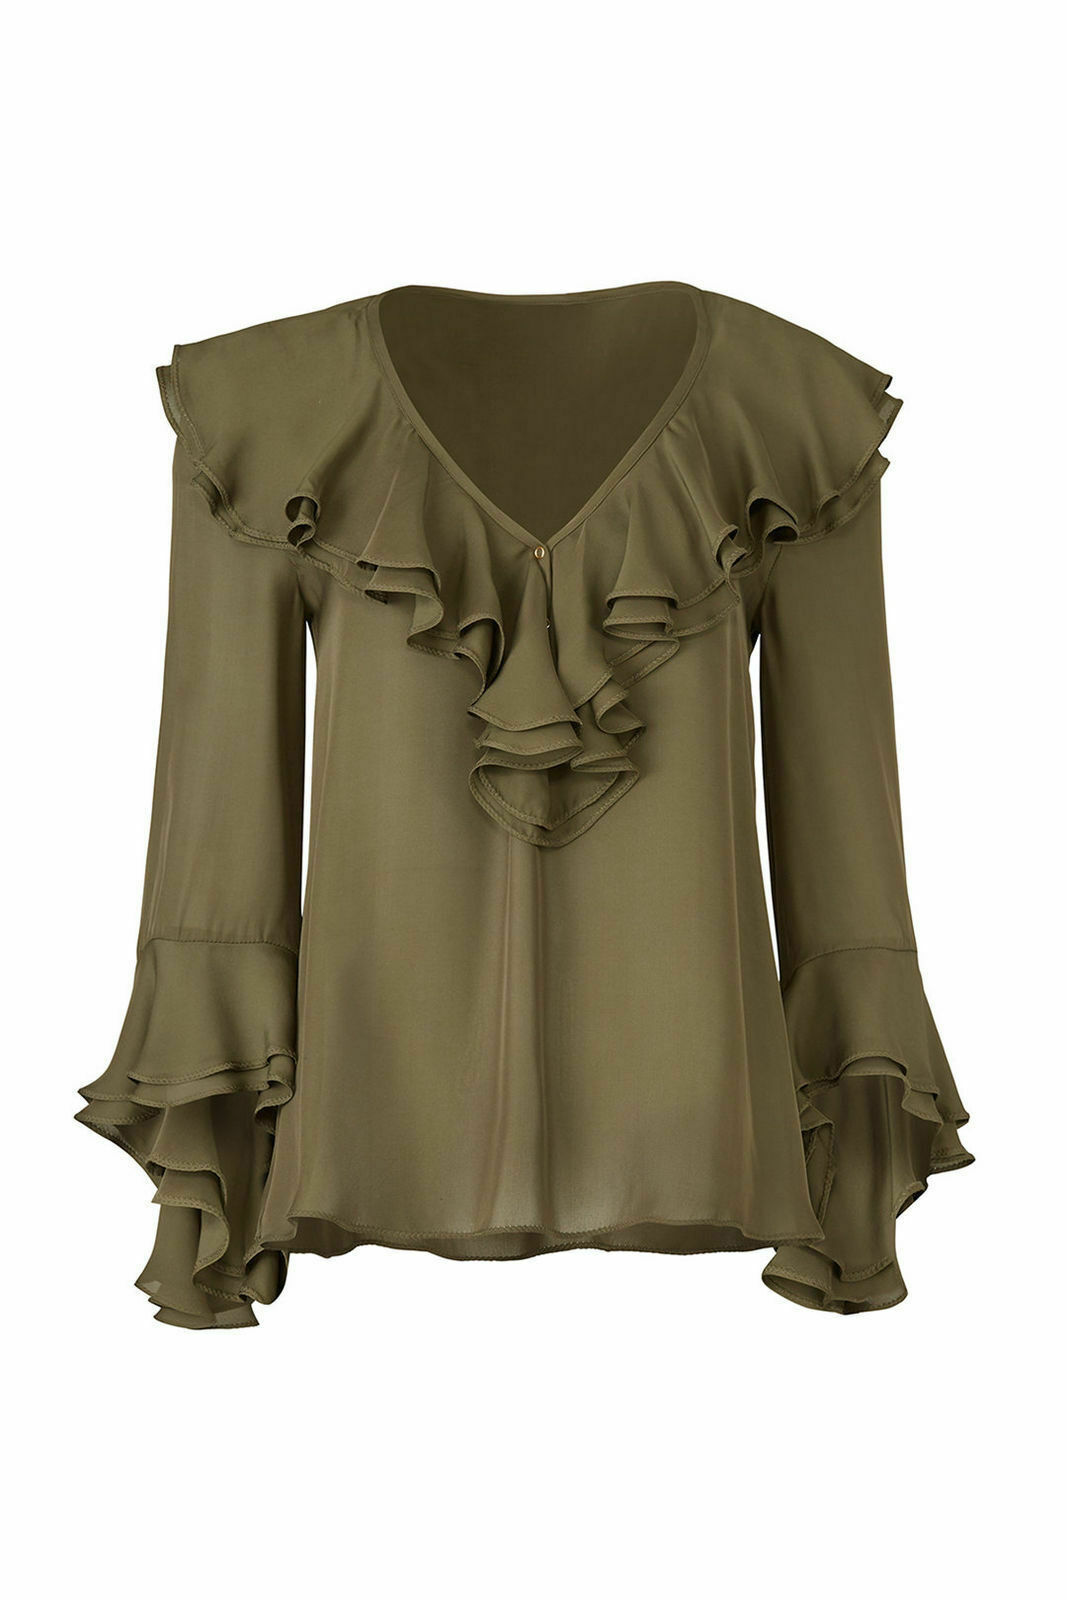 1c3b9c285a779 Details about Trina Turk Green Ruffled V-Neck Women s Size Medium M Blouse  Silk  278-  988